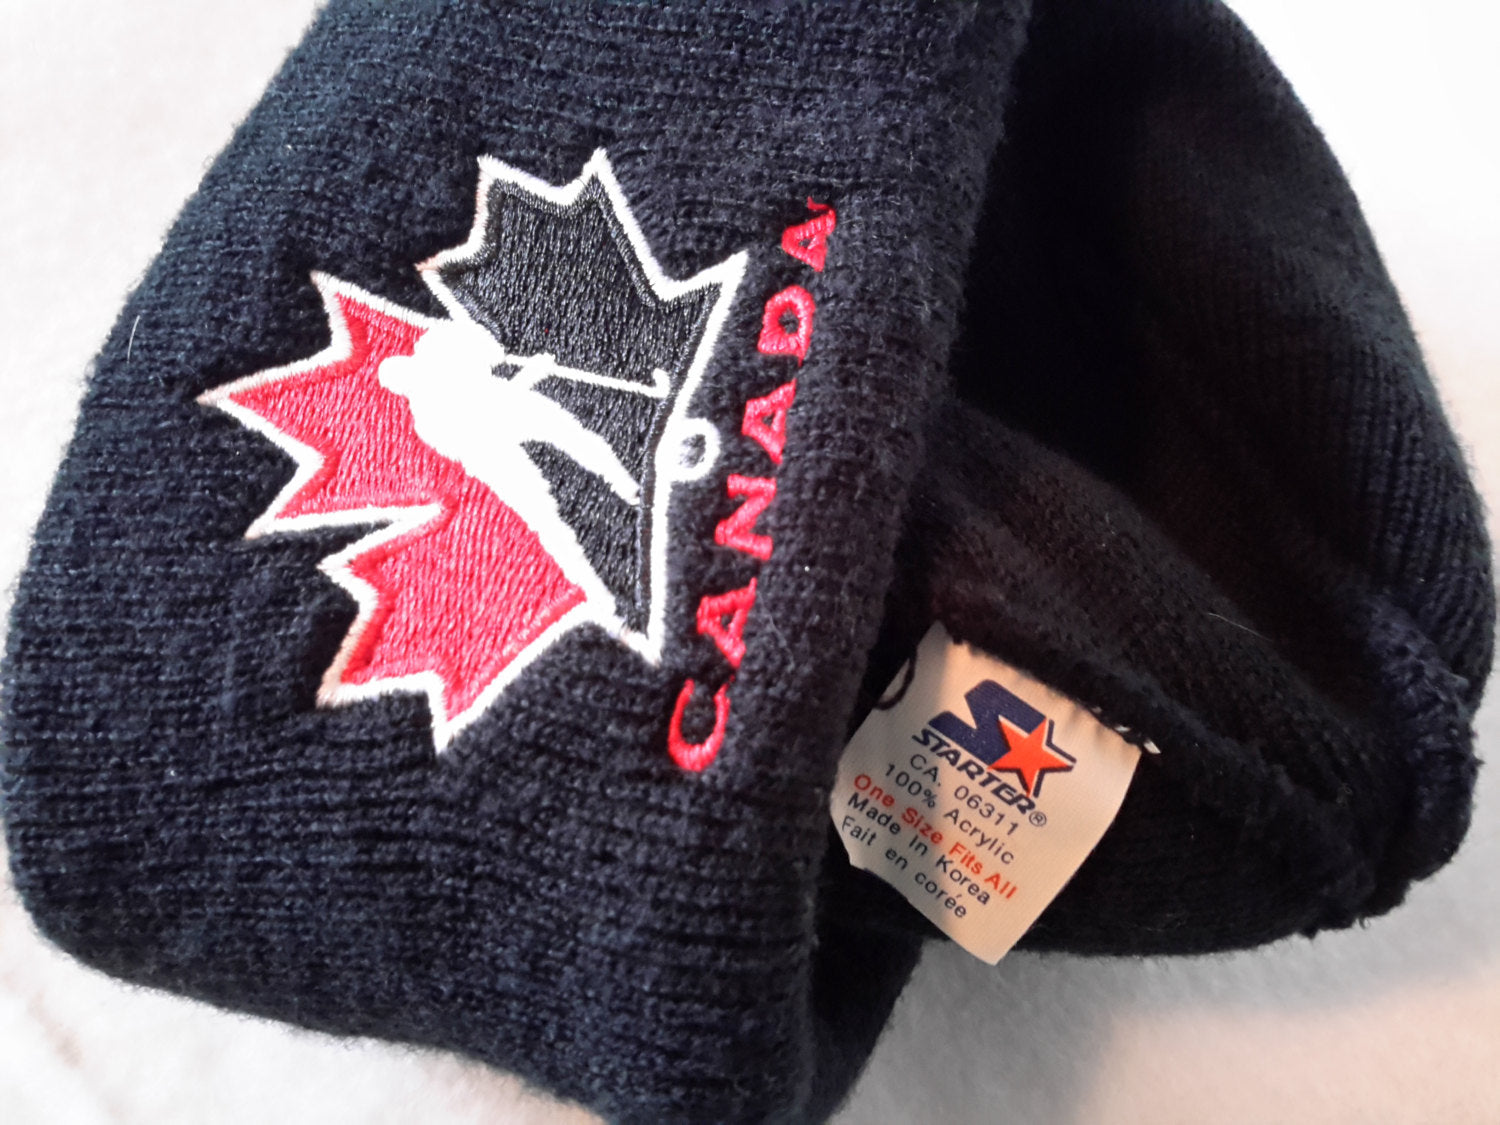 Vtg Starter  Canada NHL Cuffed Knit Beanie hat Winter cap Retro Patch 90s Style toque knit skullie